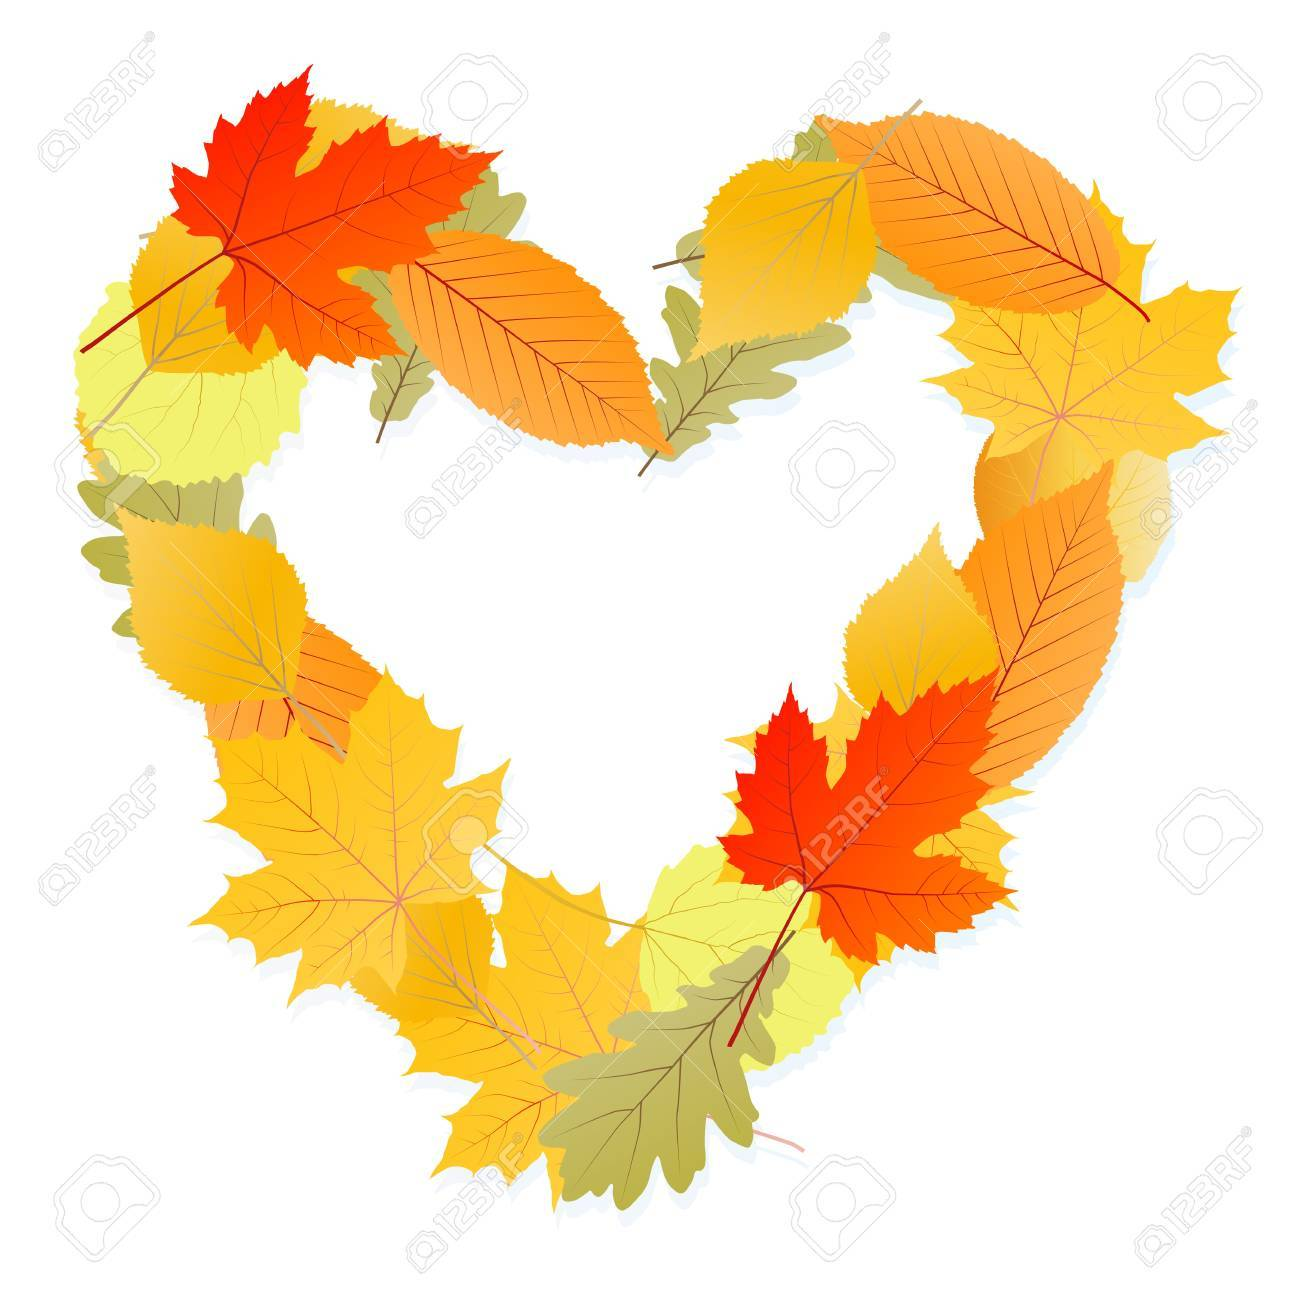 Leaf heart vector autumn background for poster Stock Vector - 16289118